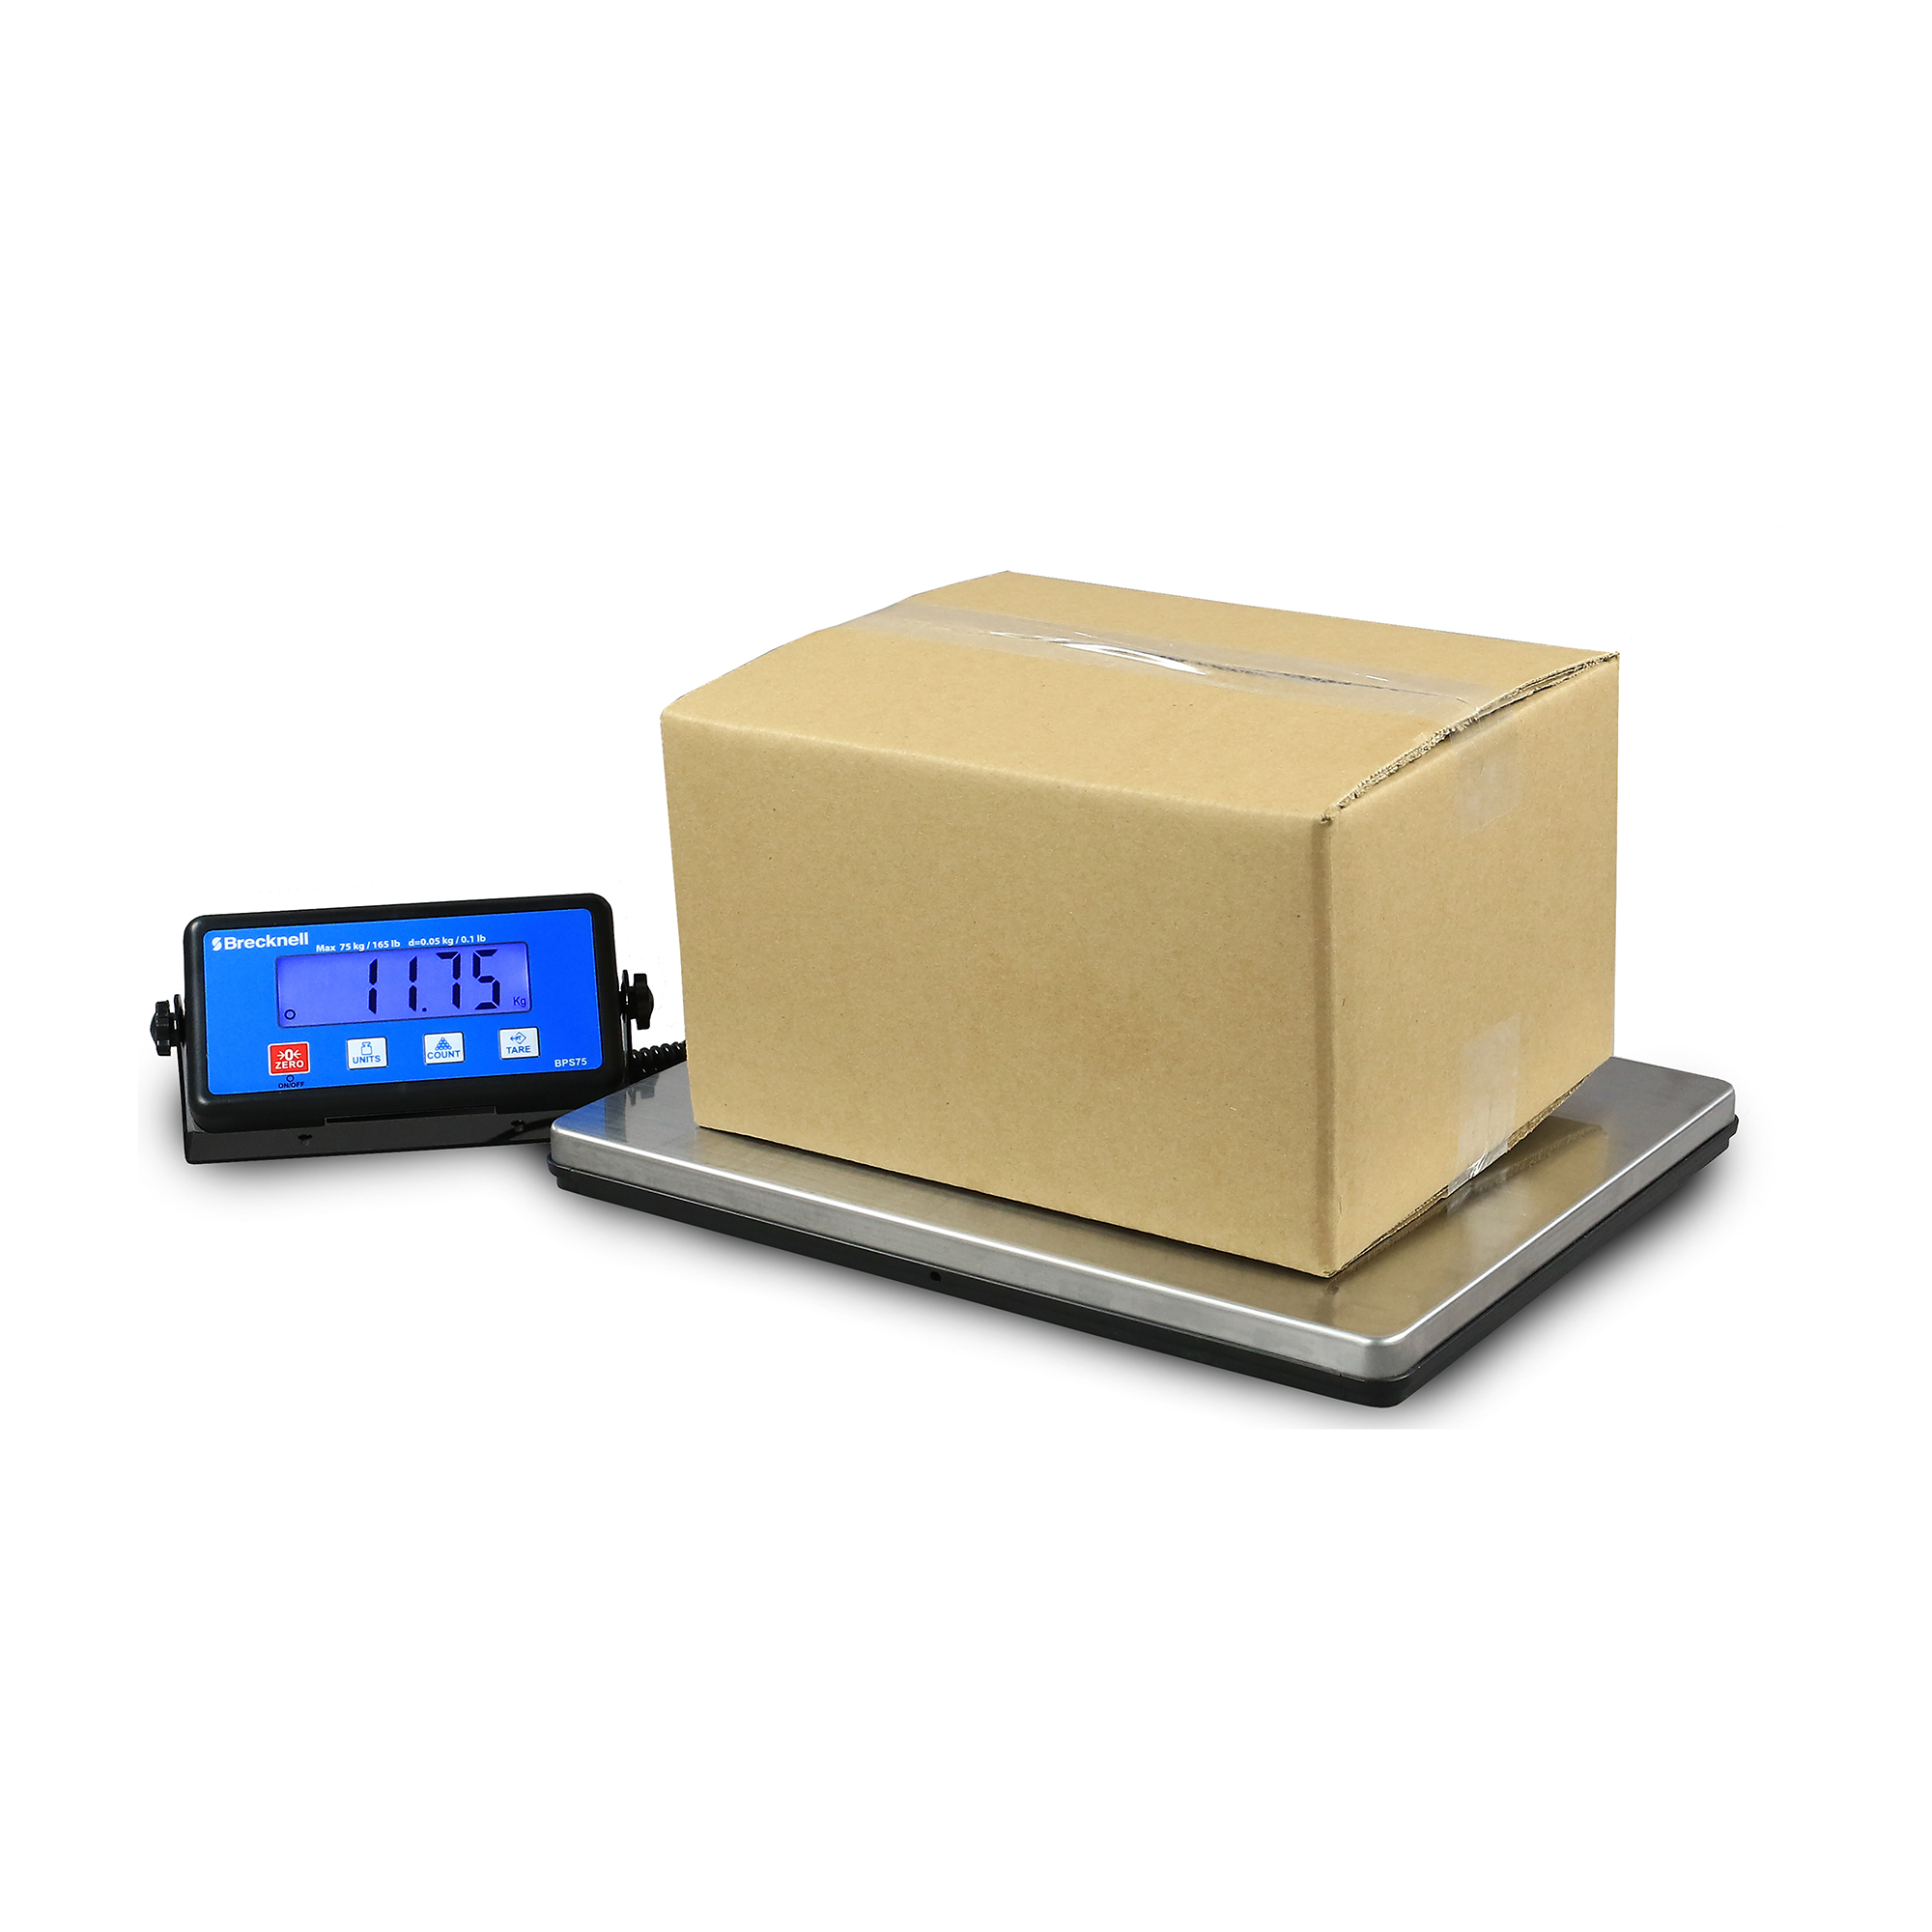 Postal scales BPS Series Parcel & Shipping Scales 75kg x 0.05kg Ref 816965007110